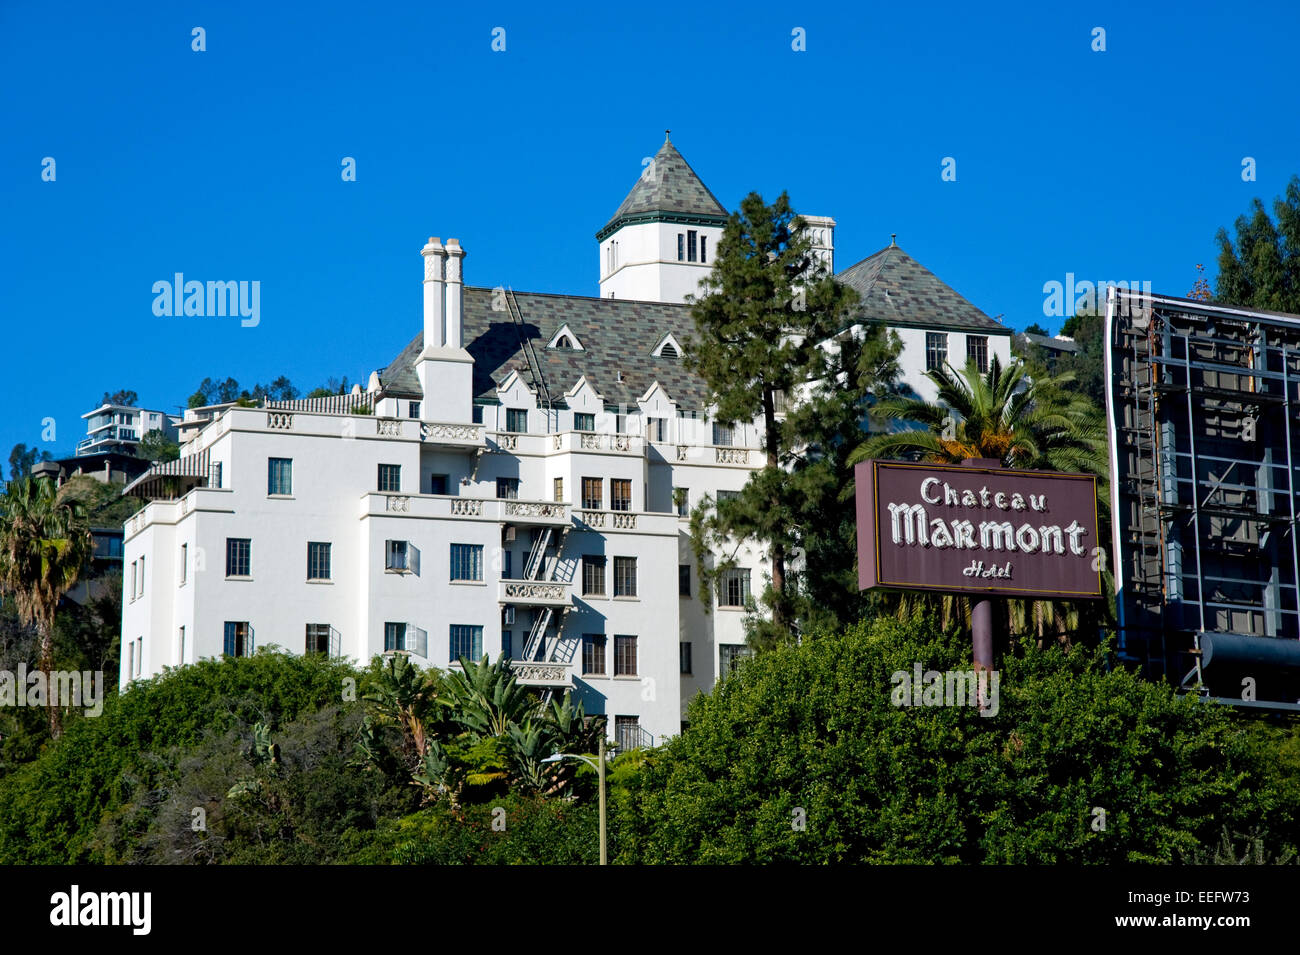 Chateau Marmont hotel on the Sunset Strip in Los Angeles, CaliforniaStock Photo